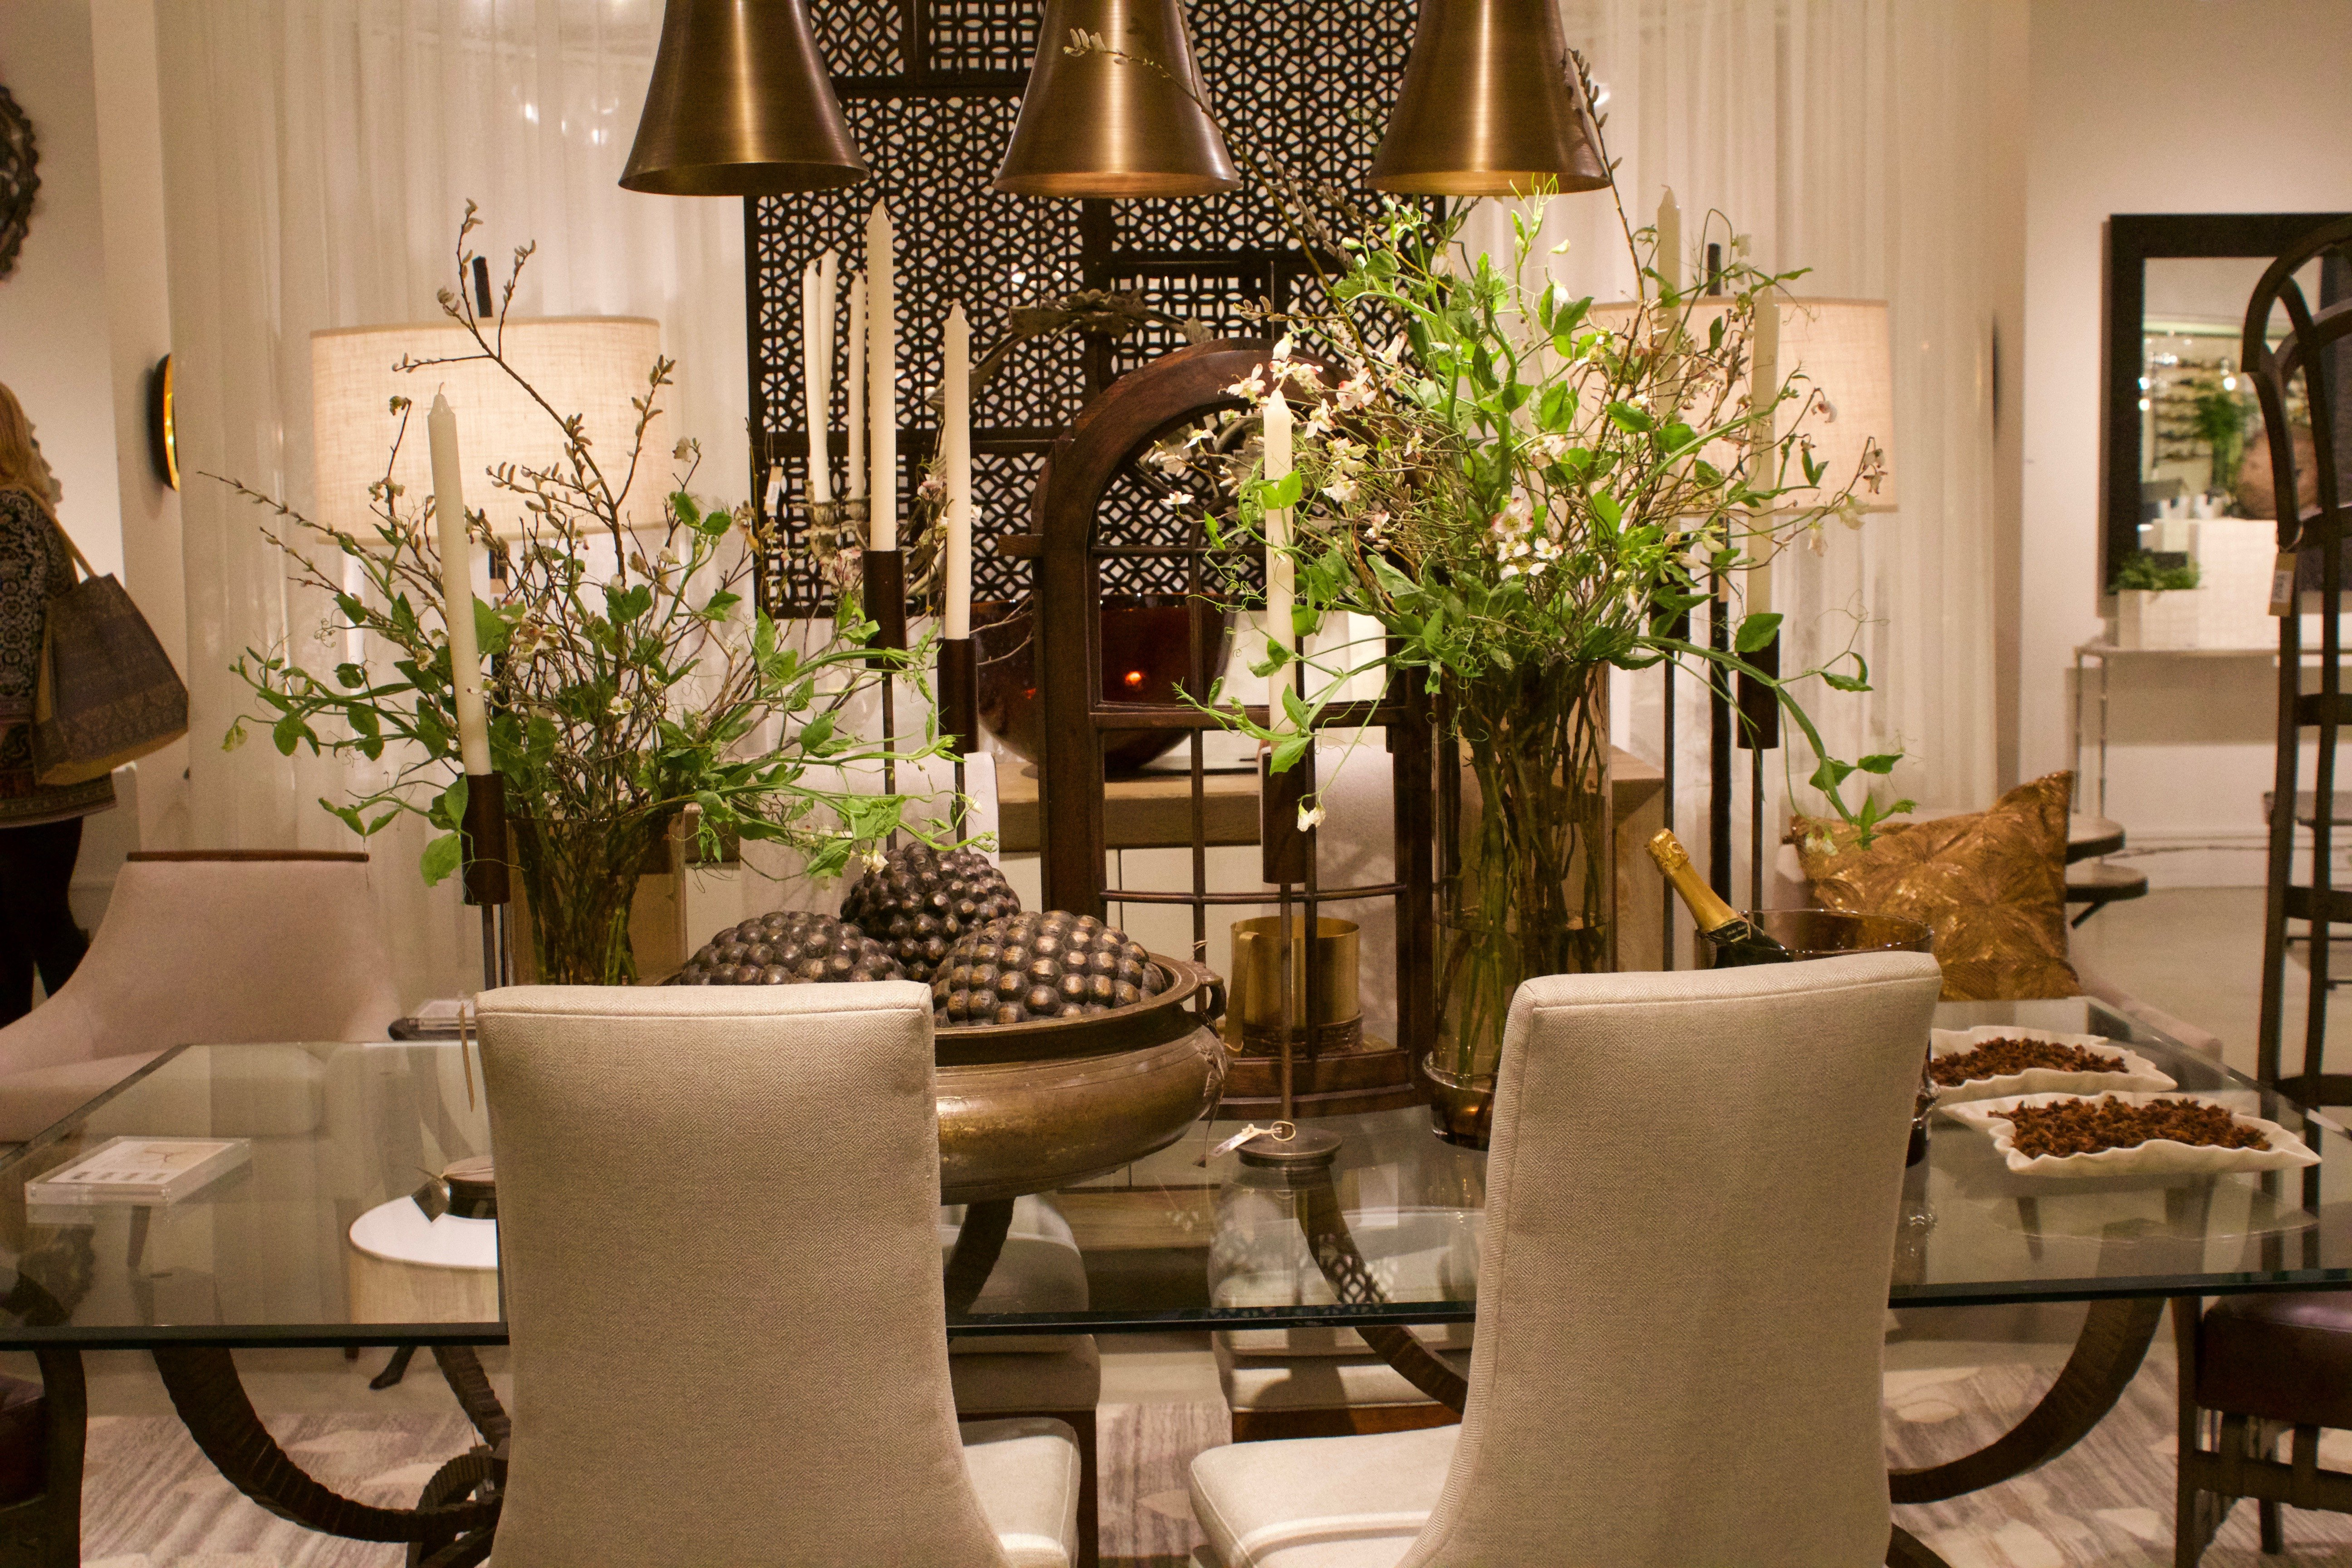 New Trends In Home Decor Fresh Hottest Interior Design Trends for 2018 and 2019